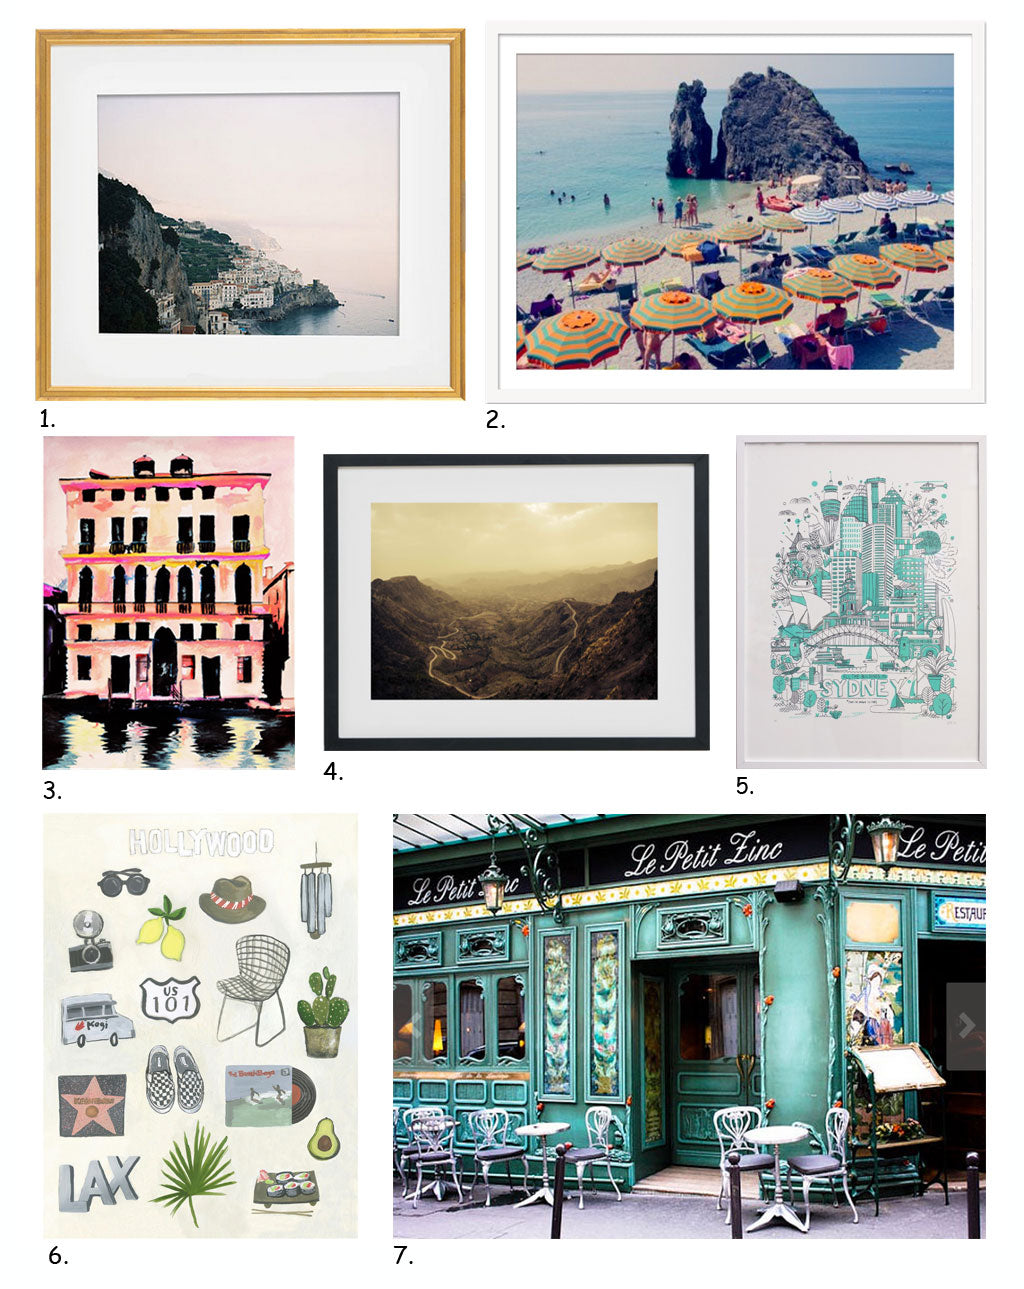 Simply Framed Gift Guide: Art for the Traveler, featuring the work of Tec Petaja, Gray Malin, Leigh Viner, Keteme, James Gulliver Hancock, Kathryn Warren of Hail Tiger Studio, Buddy Editions, and Rebecca Plotnick